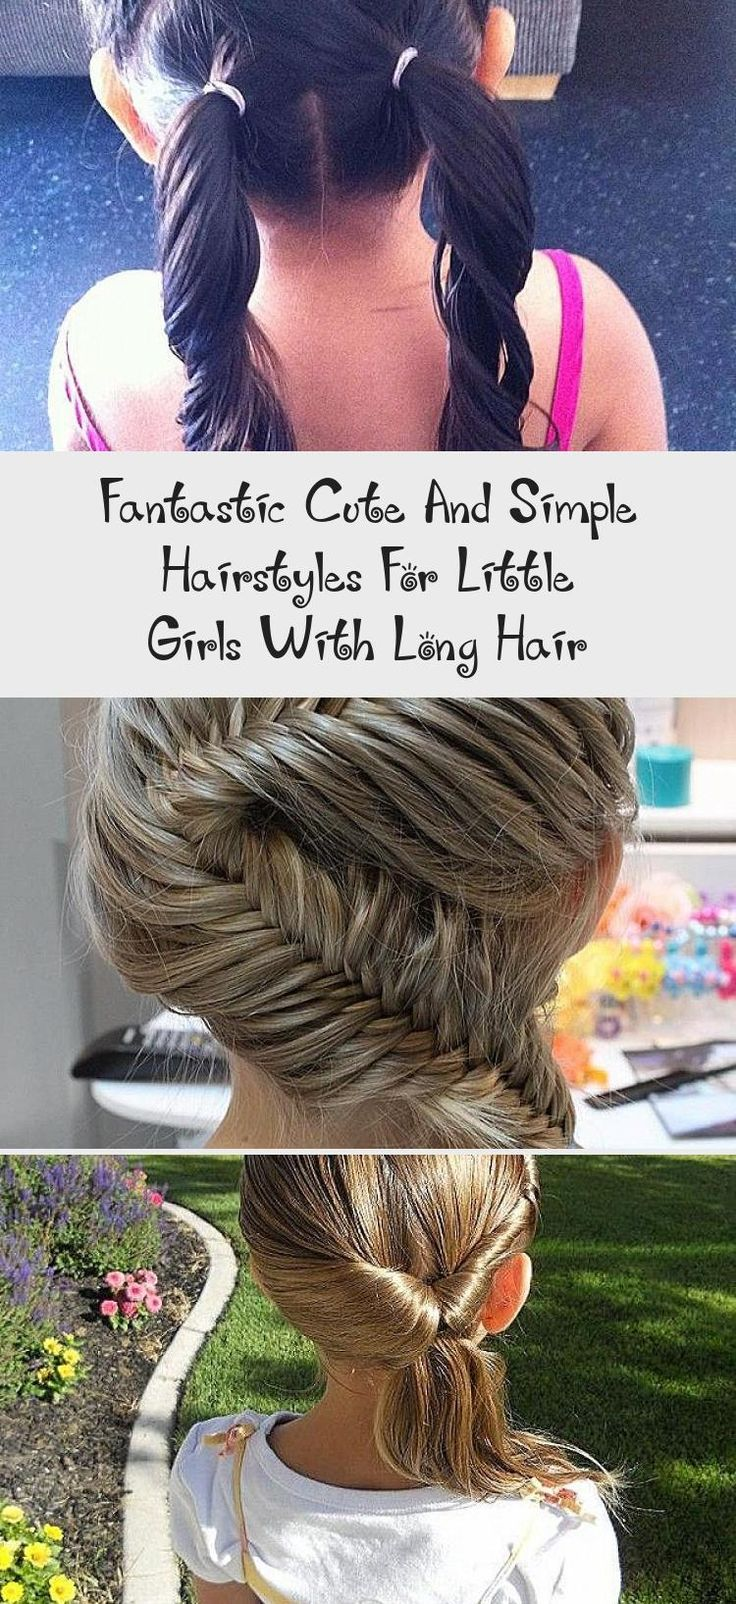 fantastic cute and simple hairstyles for little girls with